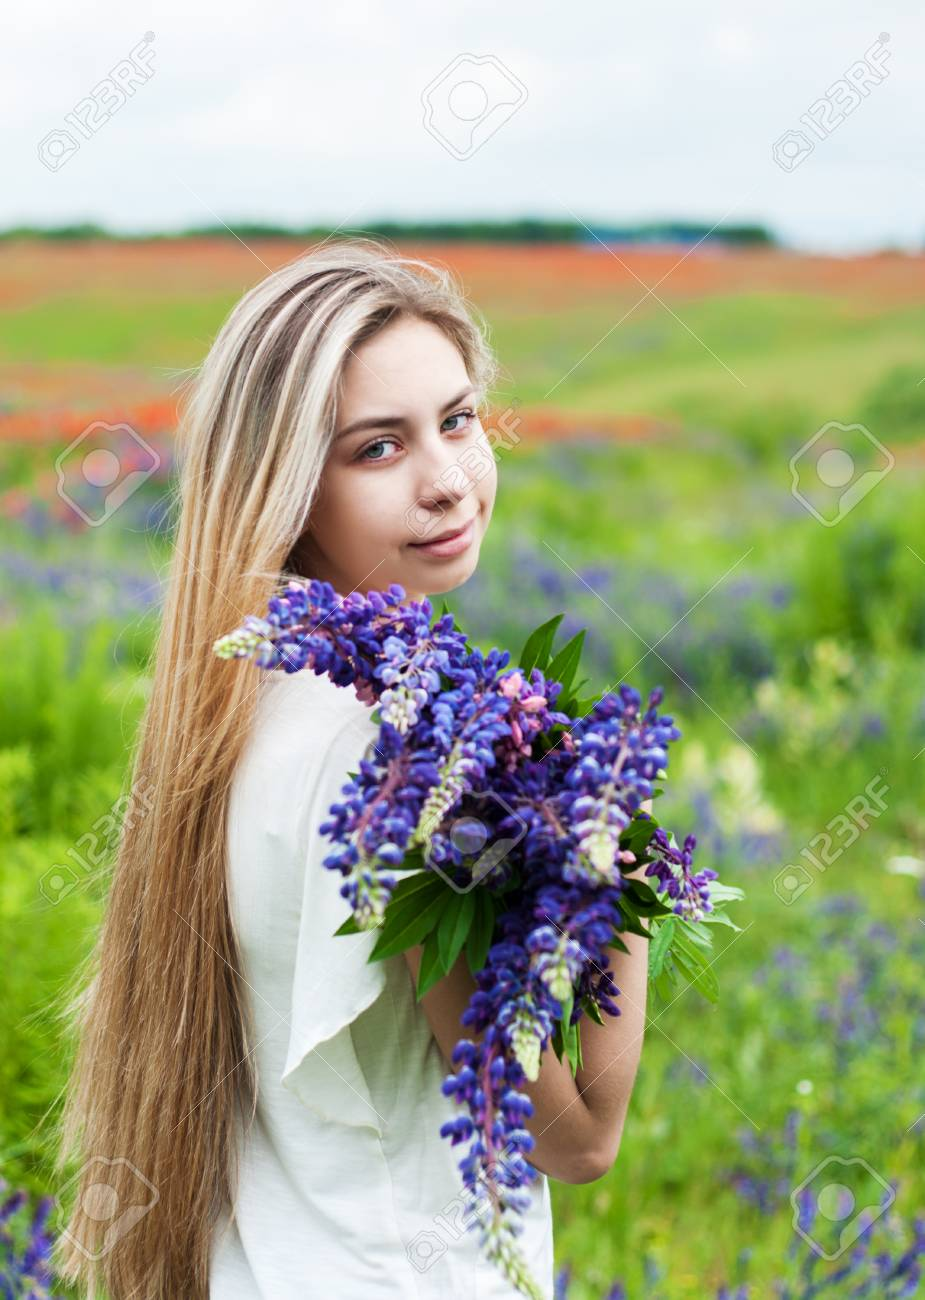 Beautiful girl with bouquet of lupine flowers in hands stock photo beautiful girl with bouquet of lupine flowers in hands stock photo 62788590 izmirmasajfo